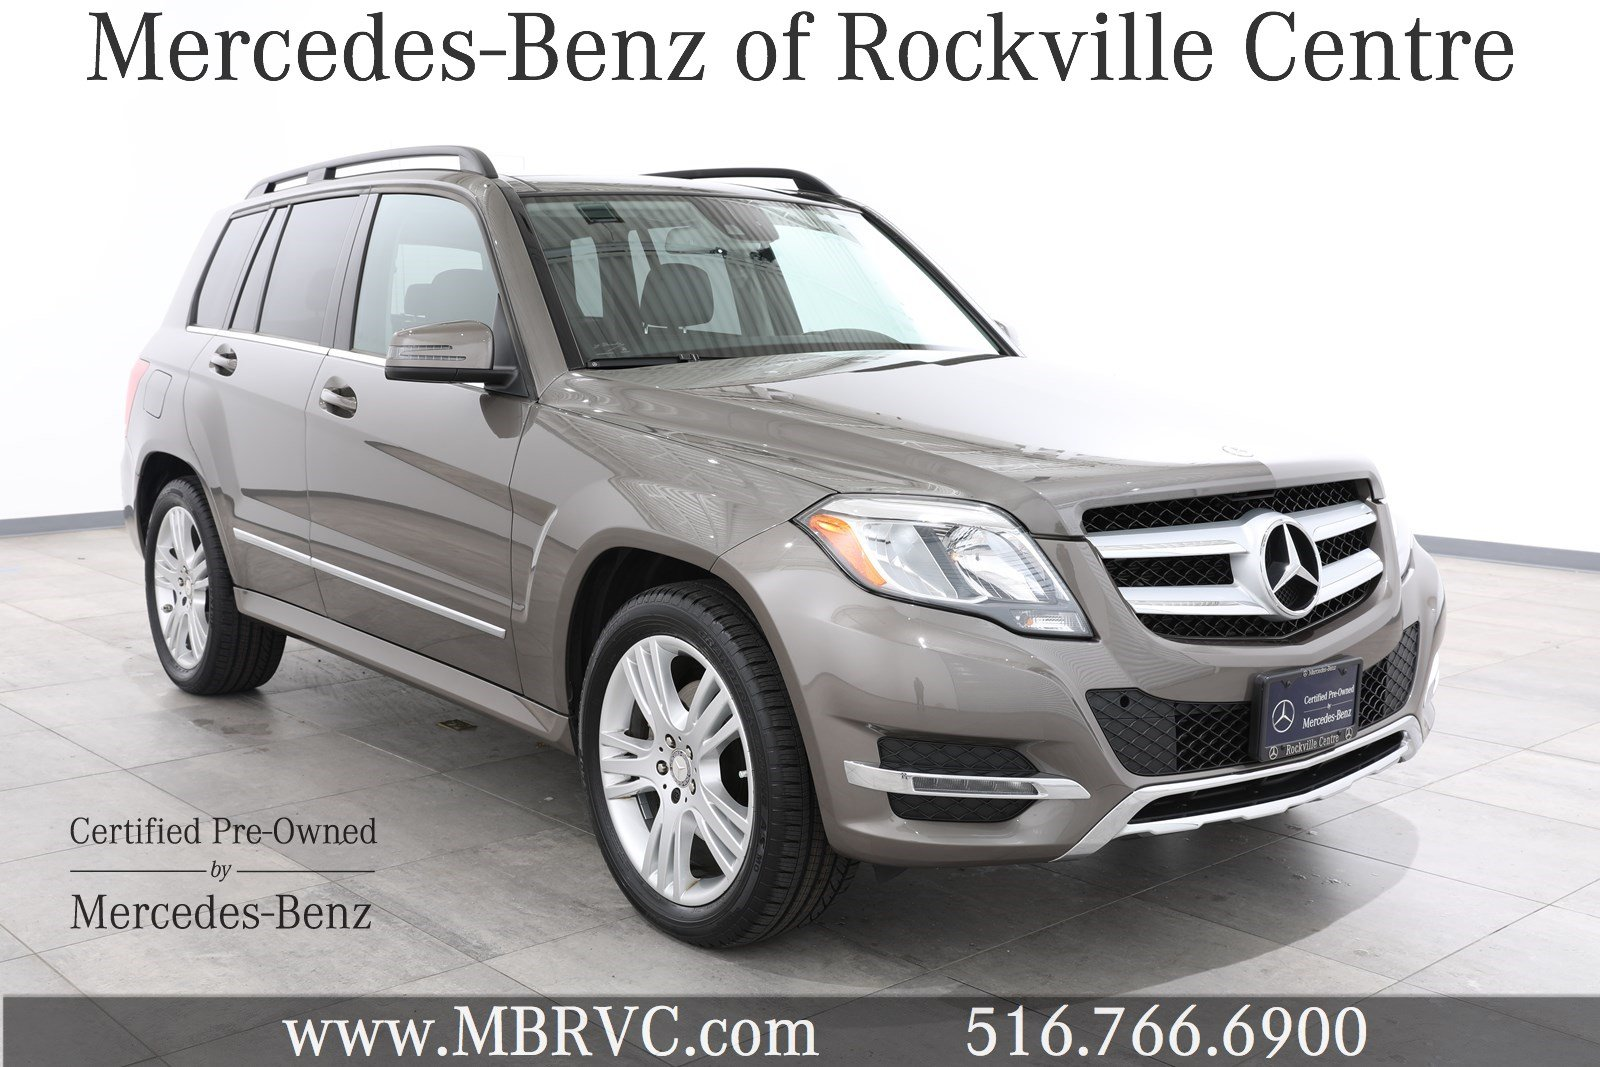 Certified pre owned 2014 mercedes benz glk glk 250 suv in for Mercedes benz buckhead preowned